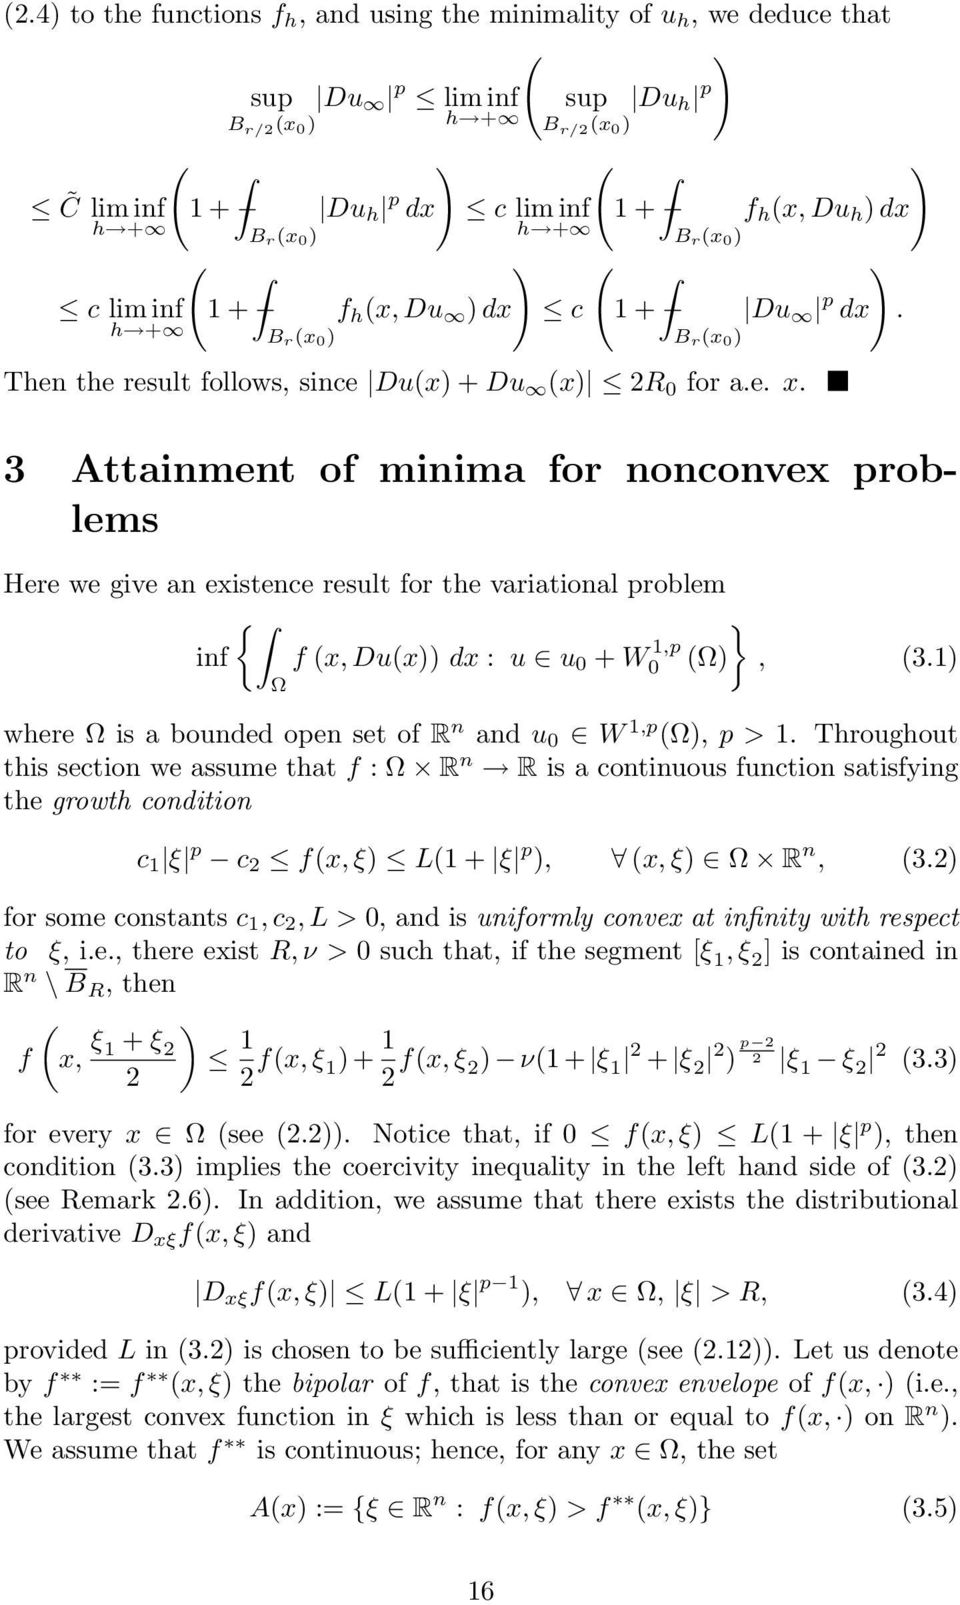 f h (x, Du h ) dx Du p dx 3 Attainment of minima for nonconvex problems Here we give an existence result for the variational problem { } inf f (x, Du(x)) dx : u u 0 + W 1,p 0 (), (3.